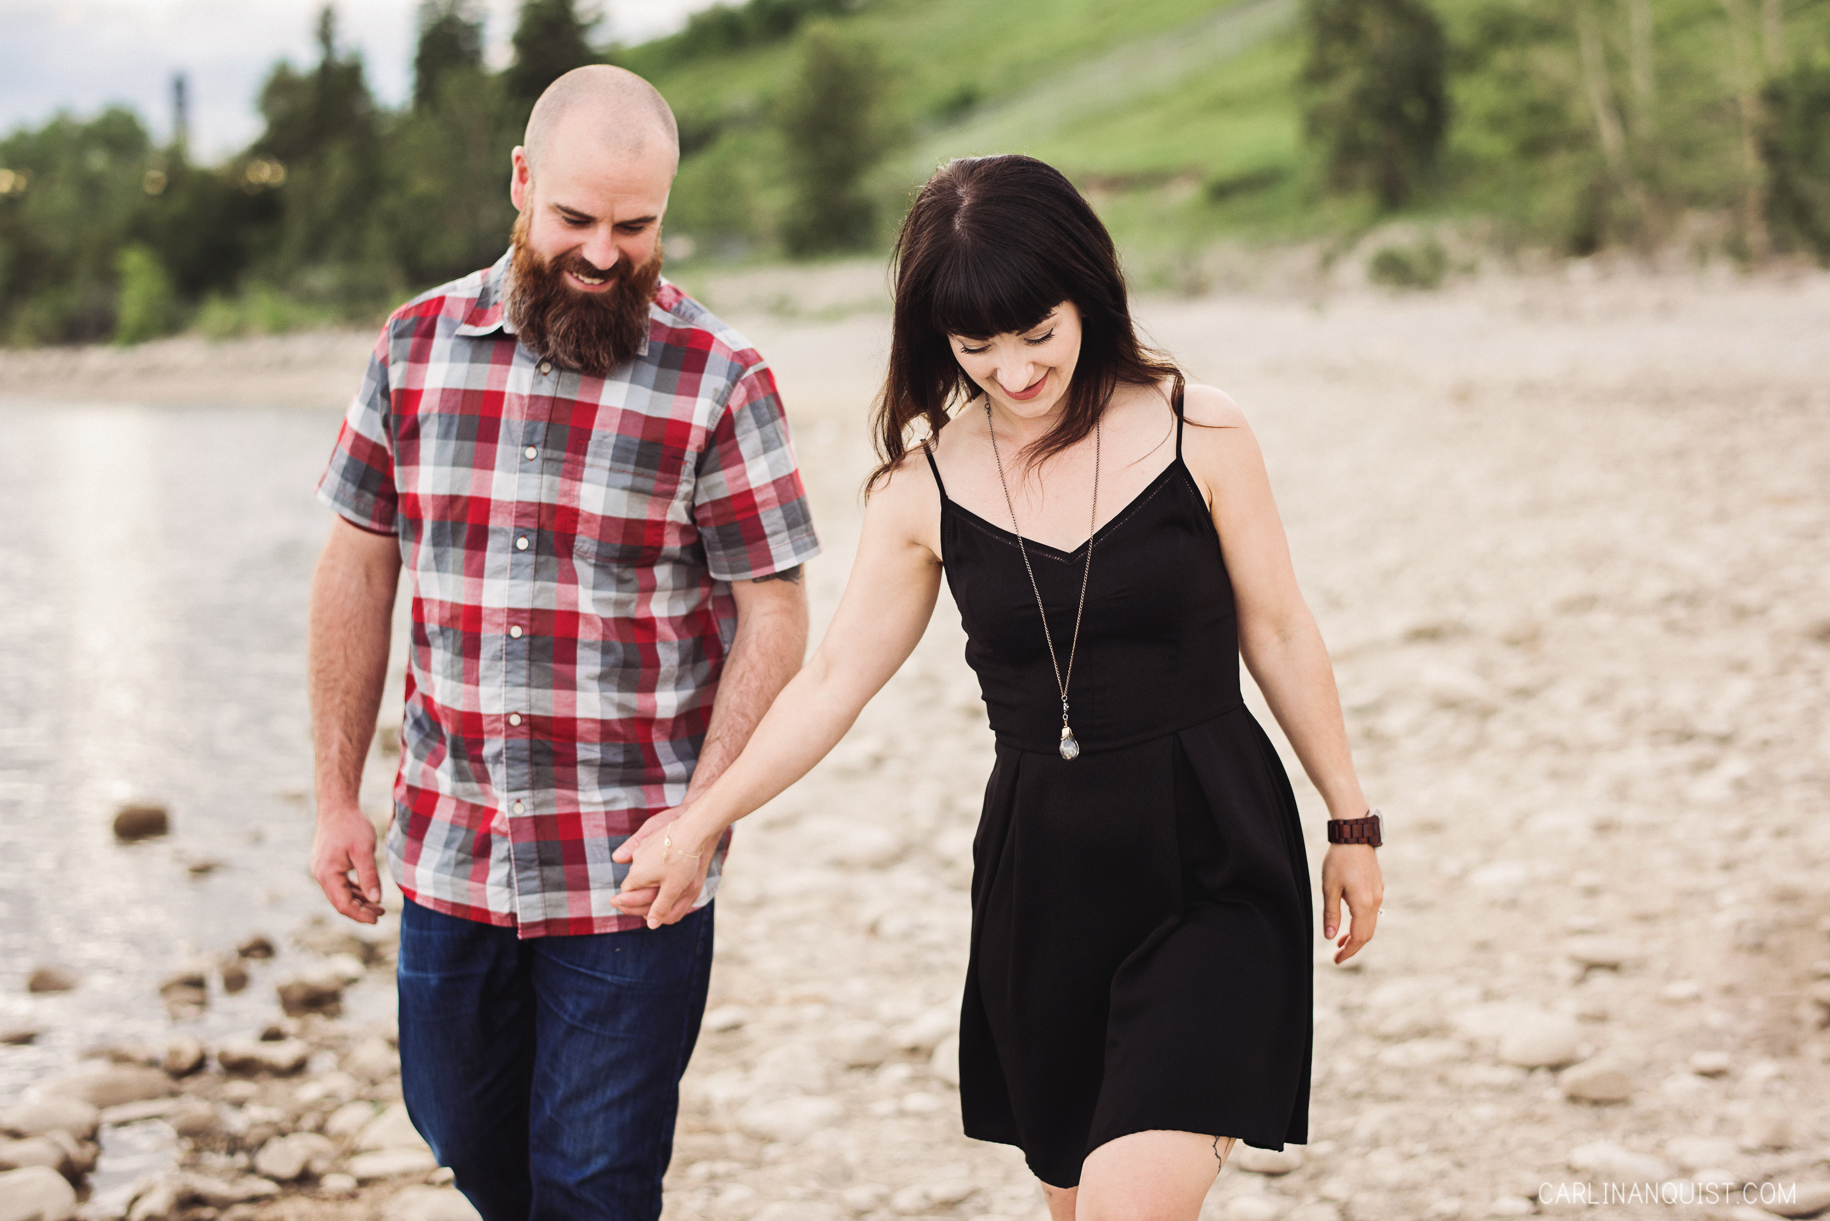 37b8d1f4c2 Spring Engagement Photos at Heritage Park